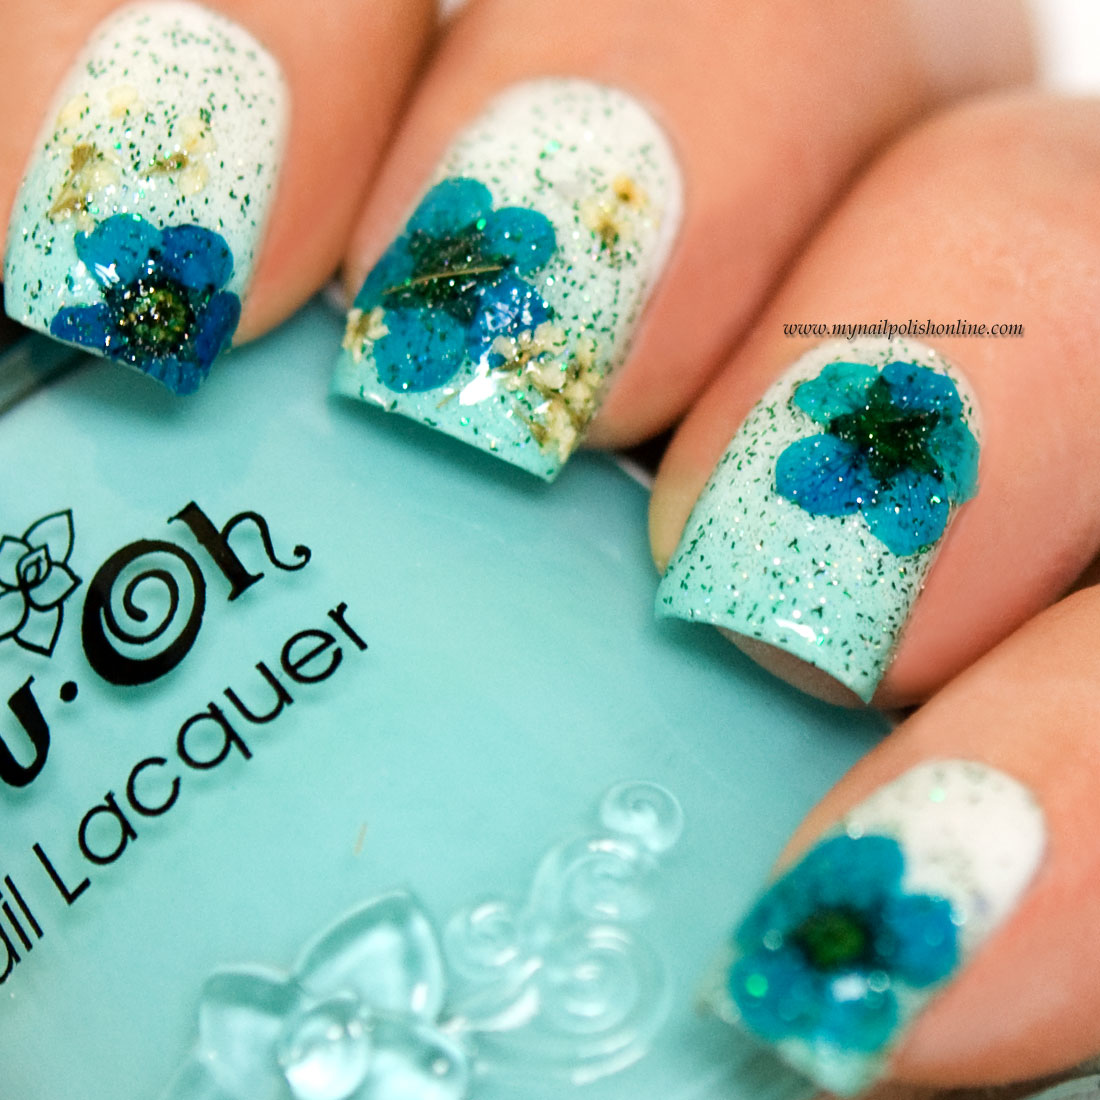 Nail Art - Floral design with dry flowers - My Nail Polish Online